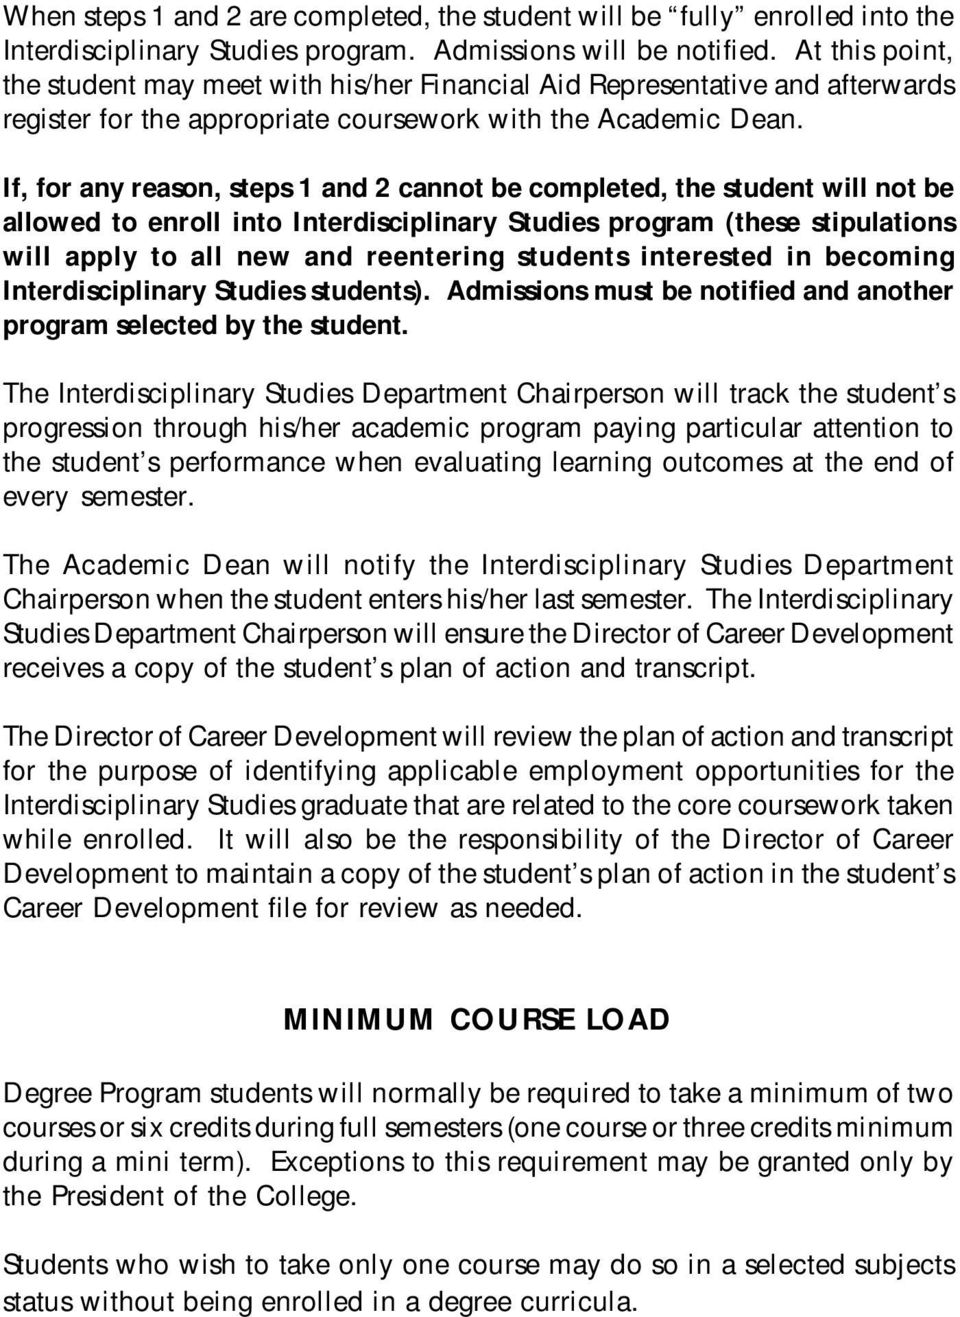 If, for any reason, steps 1 and 2 cannot be completed, the student will not be allowed to enroll into Interdisciplinary Studies program (these stipulations will apply to all new and reentering